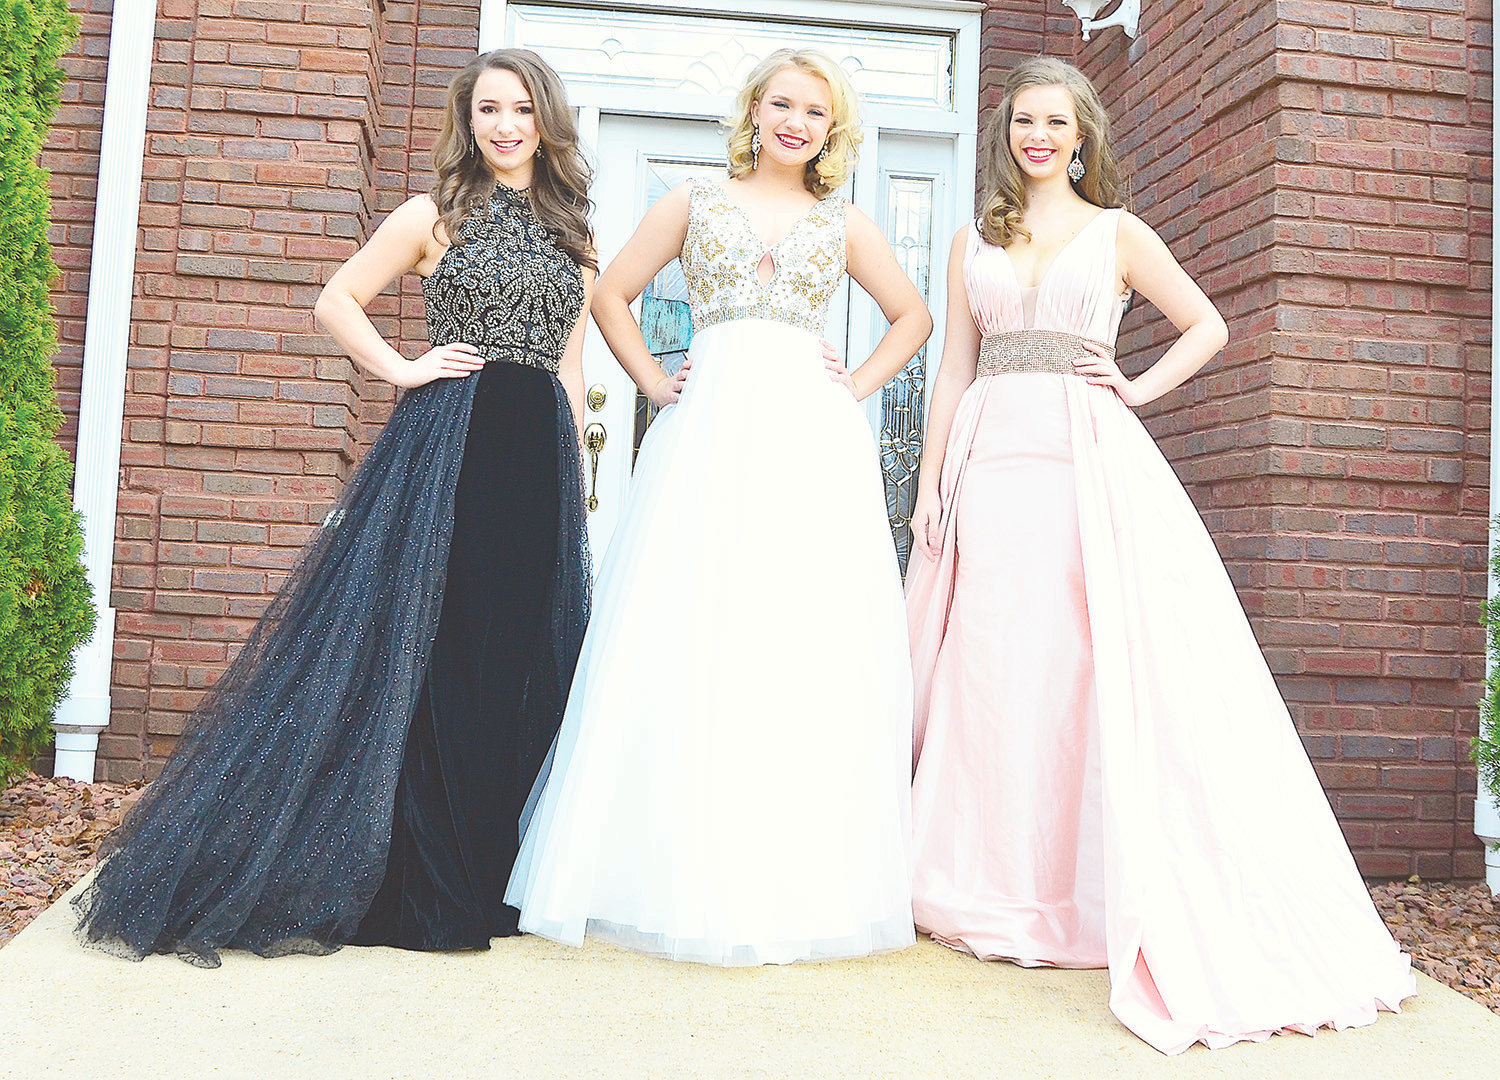 "Miss Walker County's Outstanding Teen Lindsey Wood, Miss Cotton States' Outstanding Teen Samantha Hennings and Miss Heart of Dixie Outstanding Teen Maddie Machovec pose in just a few of the outfits they will wear when they compete in the 2019 Miss Alabama's Outstanding Teen Pageant on Saturday, March 2, and Sunday, March 3, at Thompson High School in Alabaster. The theme of this year's pageant is ""Home Sweet Home"" and will feature Collins McMurray, Miss Alabama's Outstanding Teen 2018, and 50 contestants from across the state."